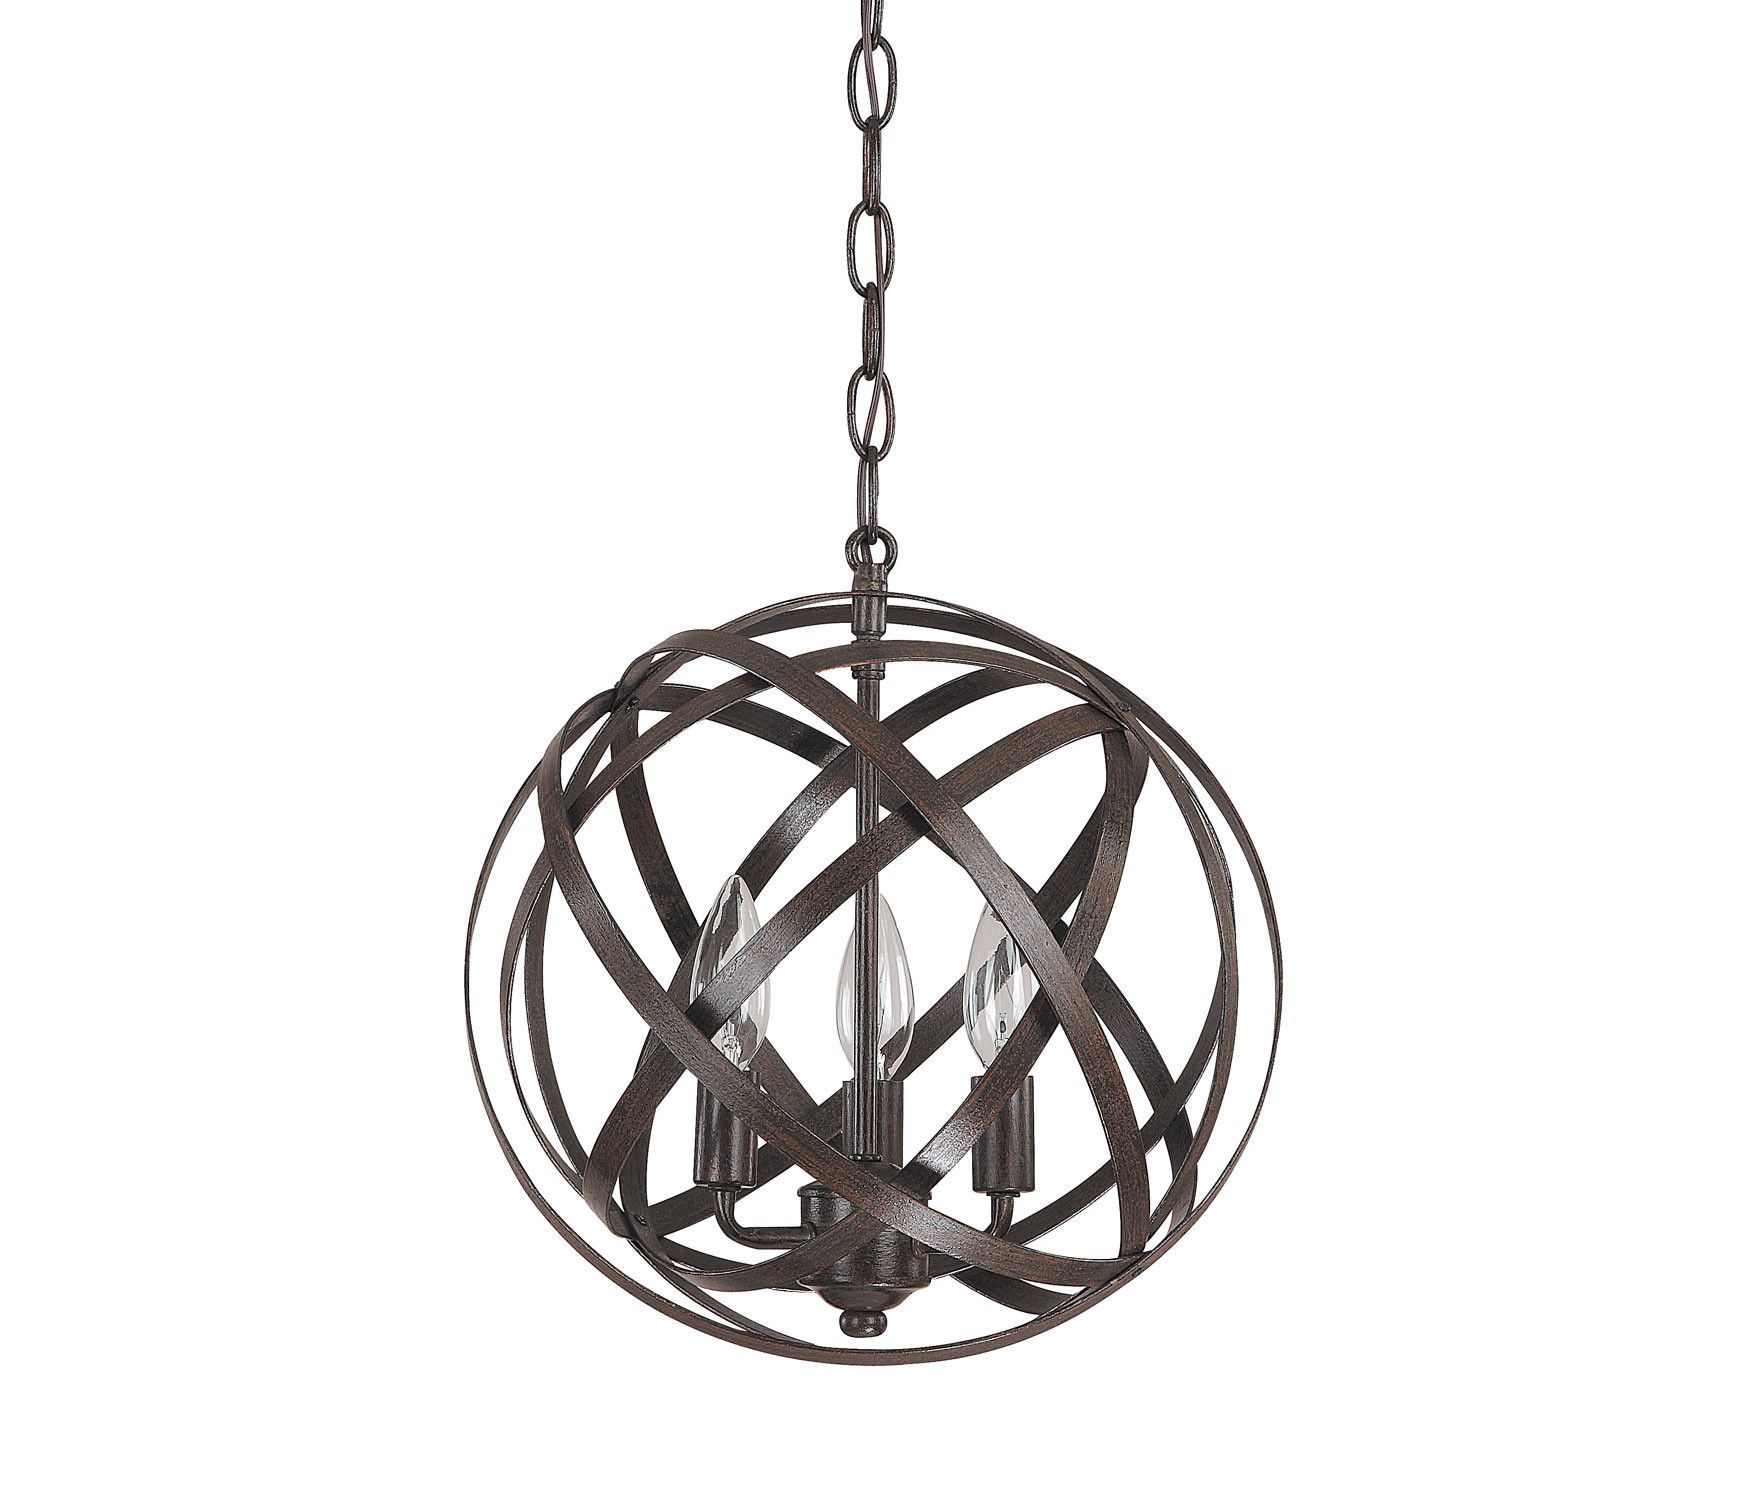 light pendant products pinterest products